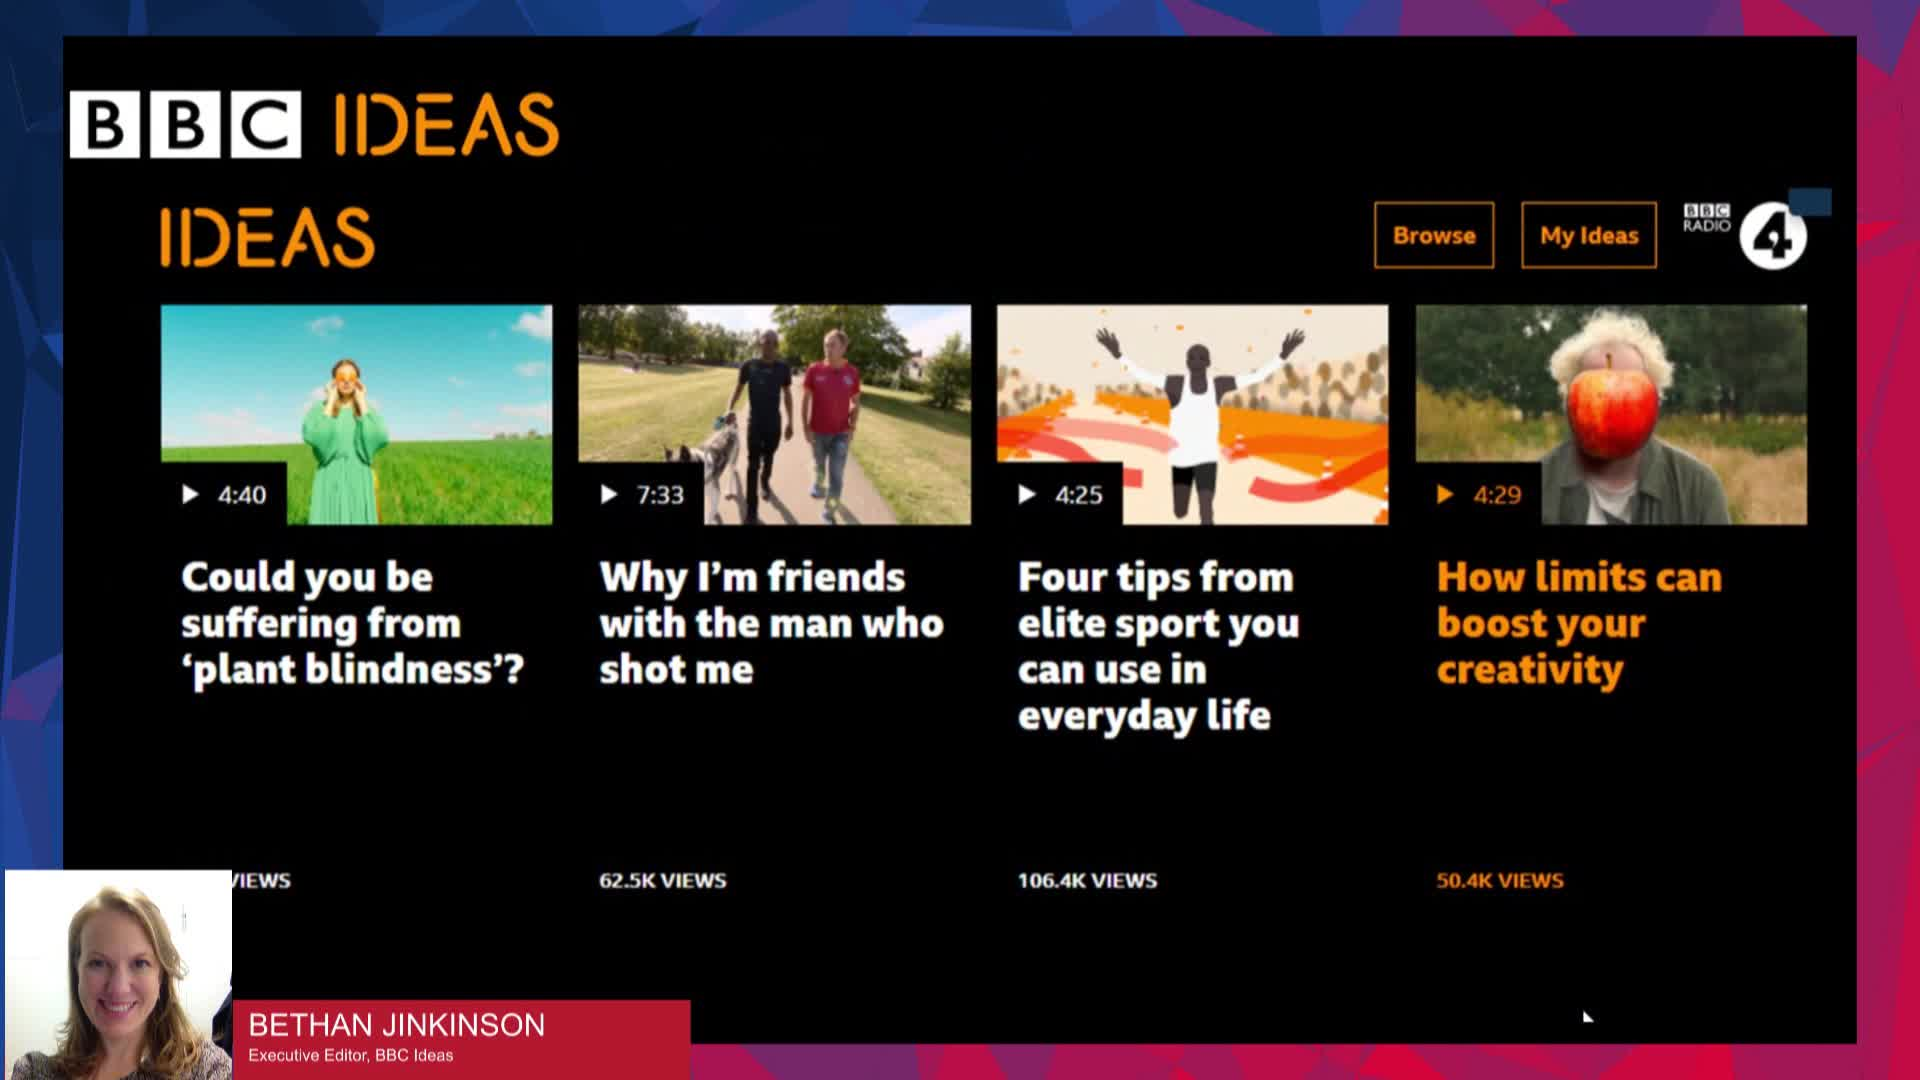 Exploring not Explaining - Reaching New Audiences the BBC Ideas Way